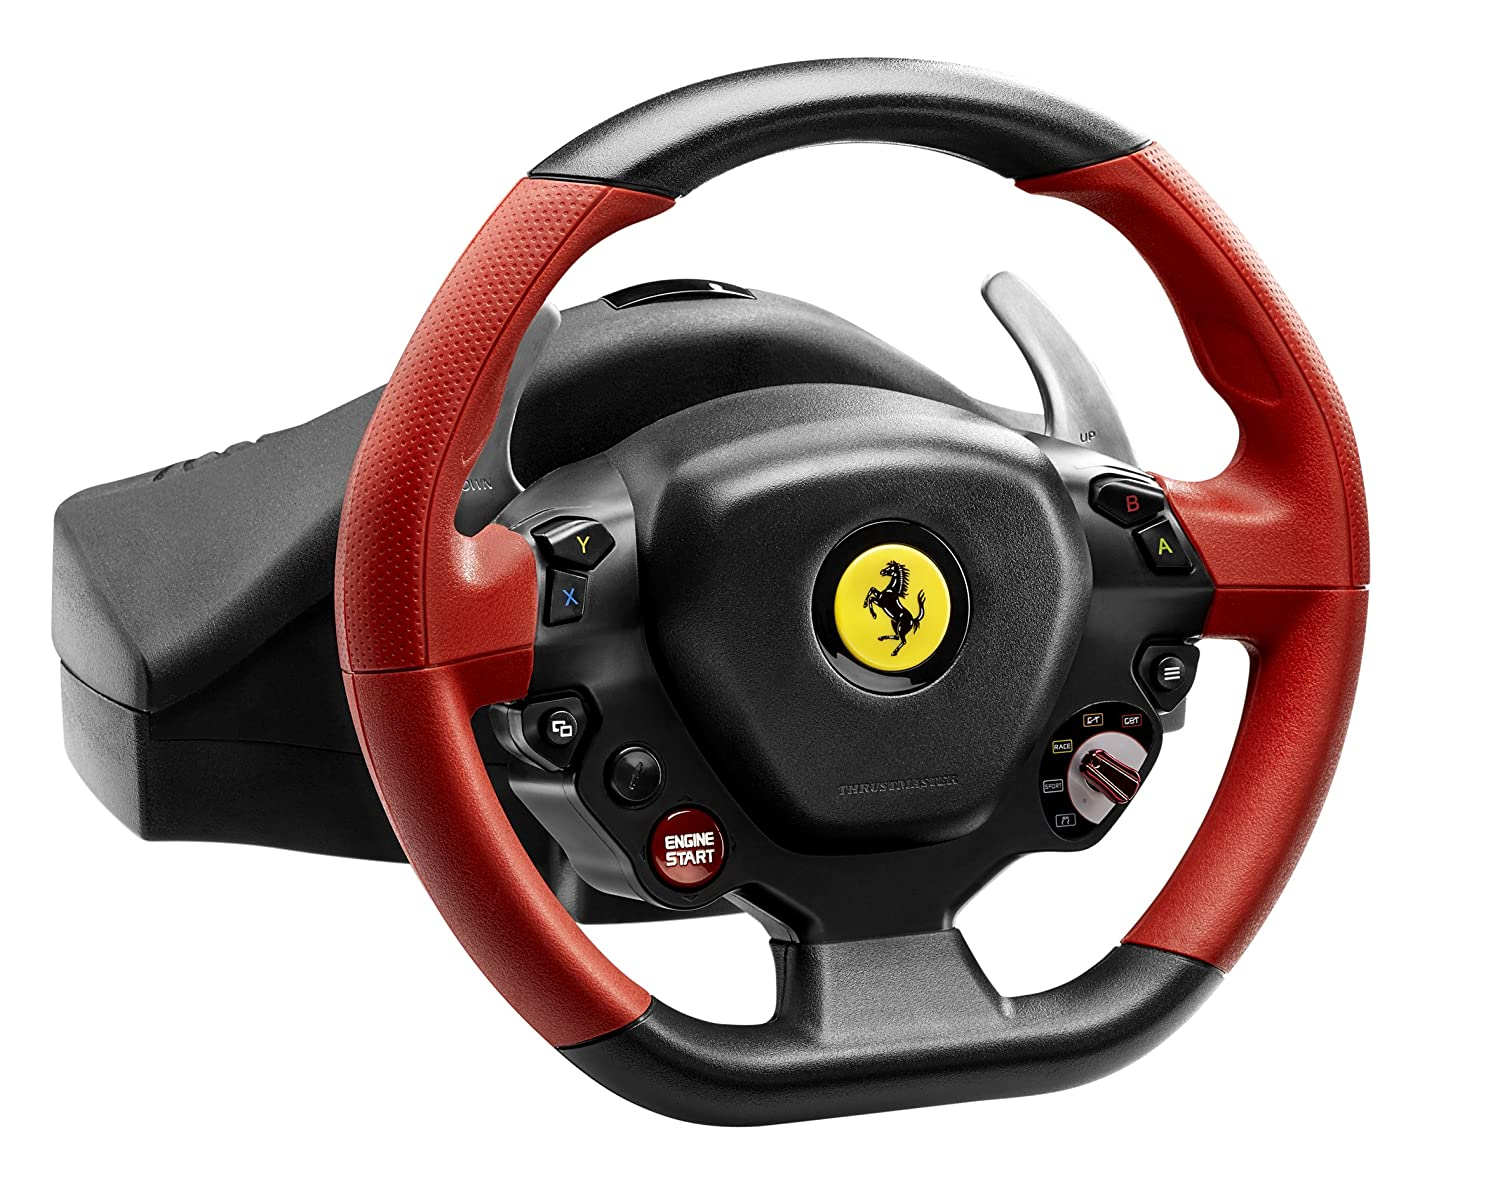 my cars pictures amazing is project xbox wheel official racing with of index thrustmaster t ferrari setup archive forum tx